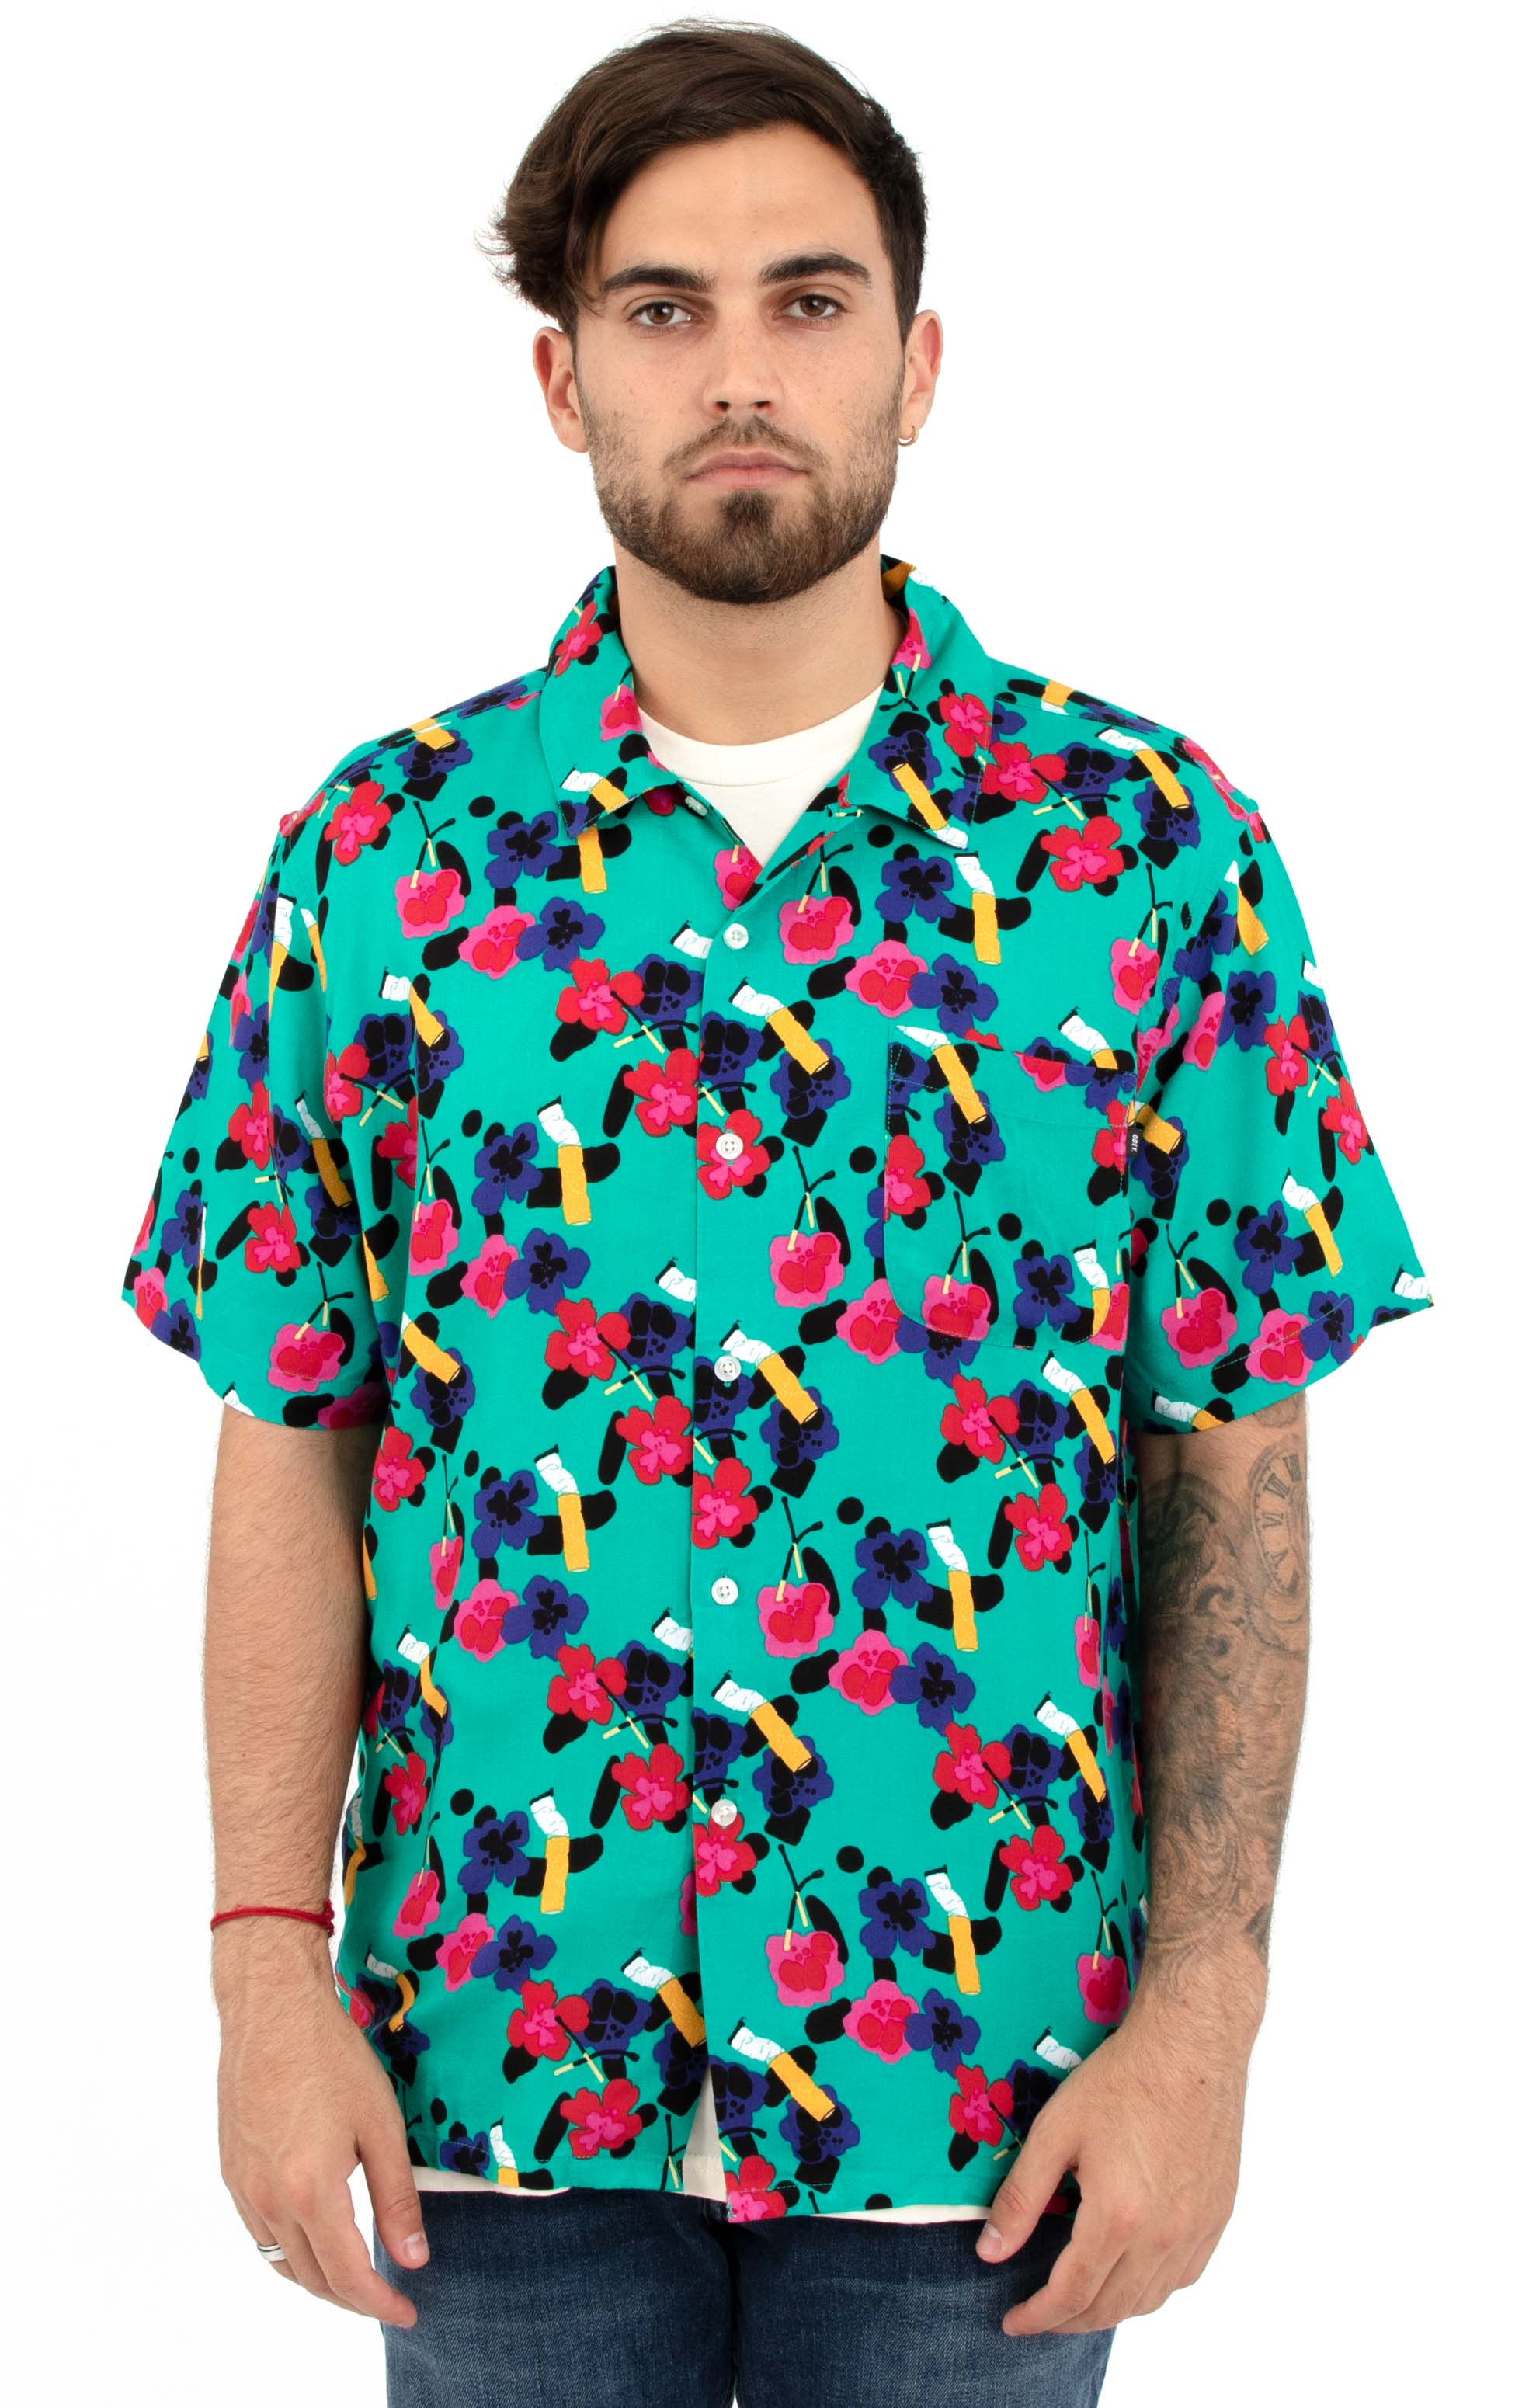 Ashed Out S/S Button-Up Shirt - Teal Multi